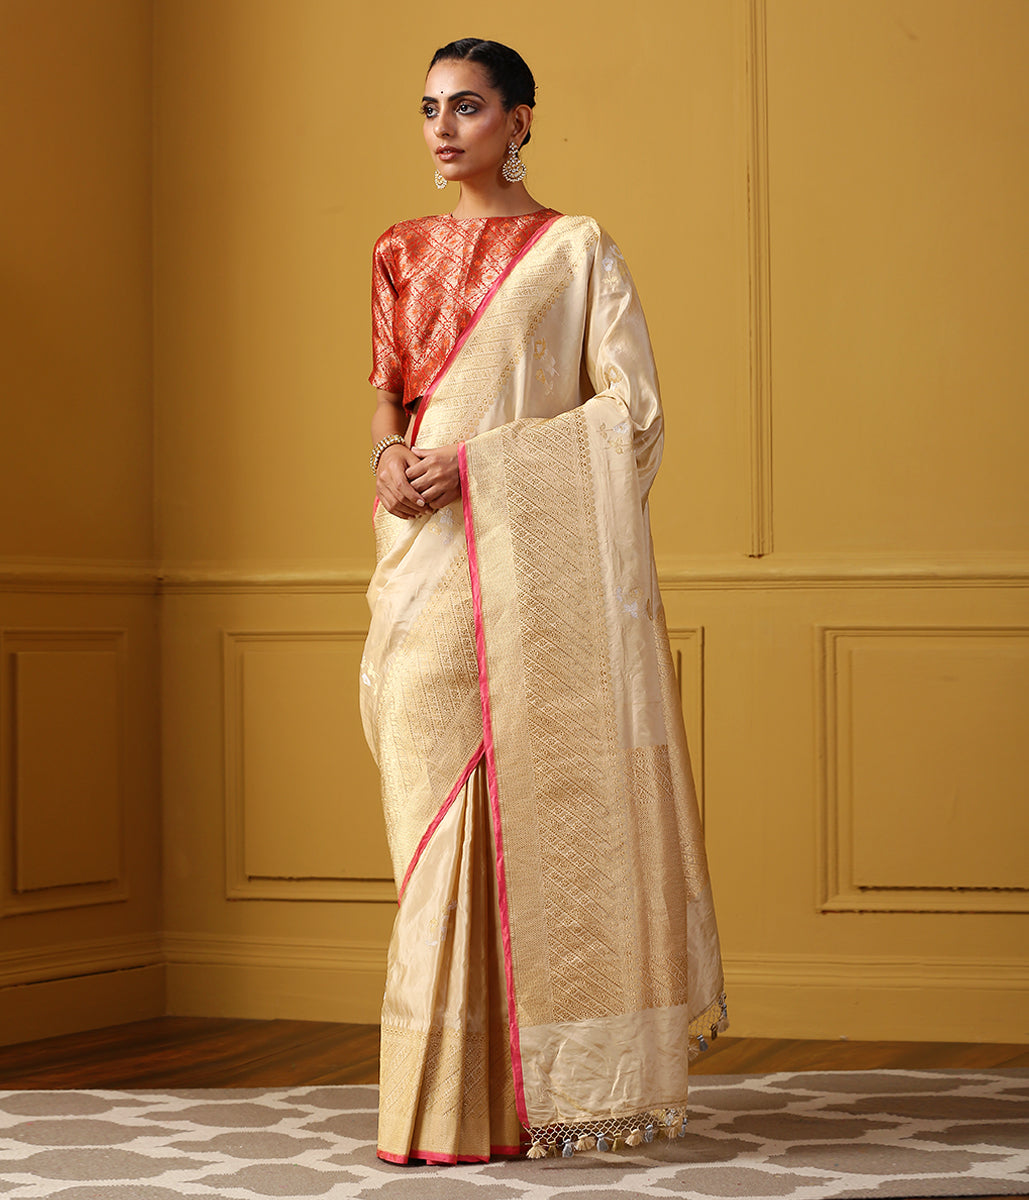 Handwoven Gold Silk Tissue Saree with Twin Leaf Motifs